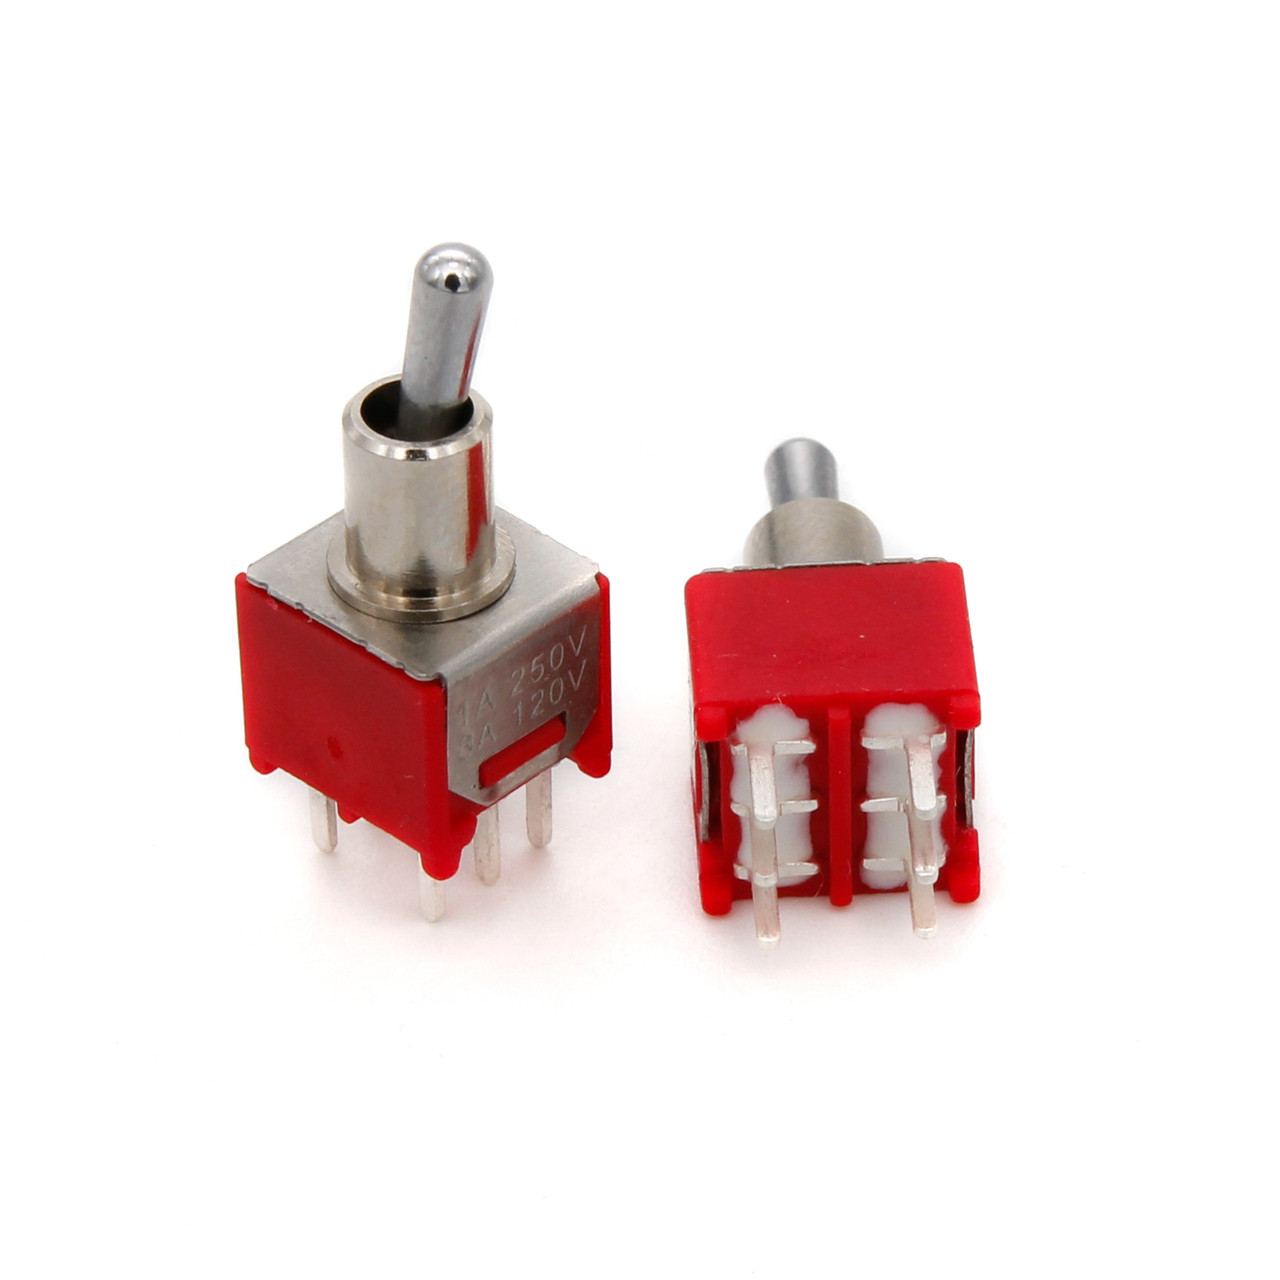 DPDT Sub Mini Toggle Switch - ON/ON - PCB Mount